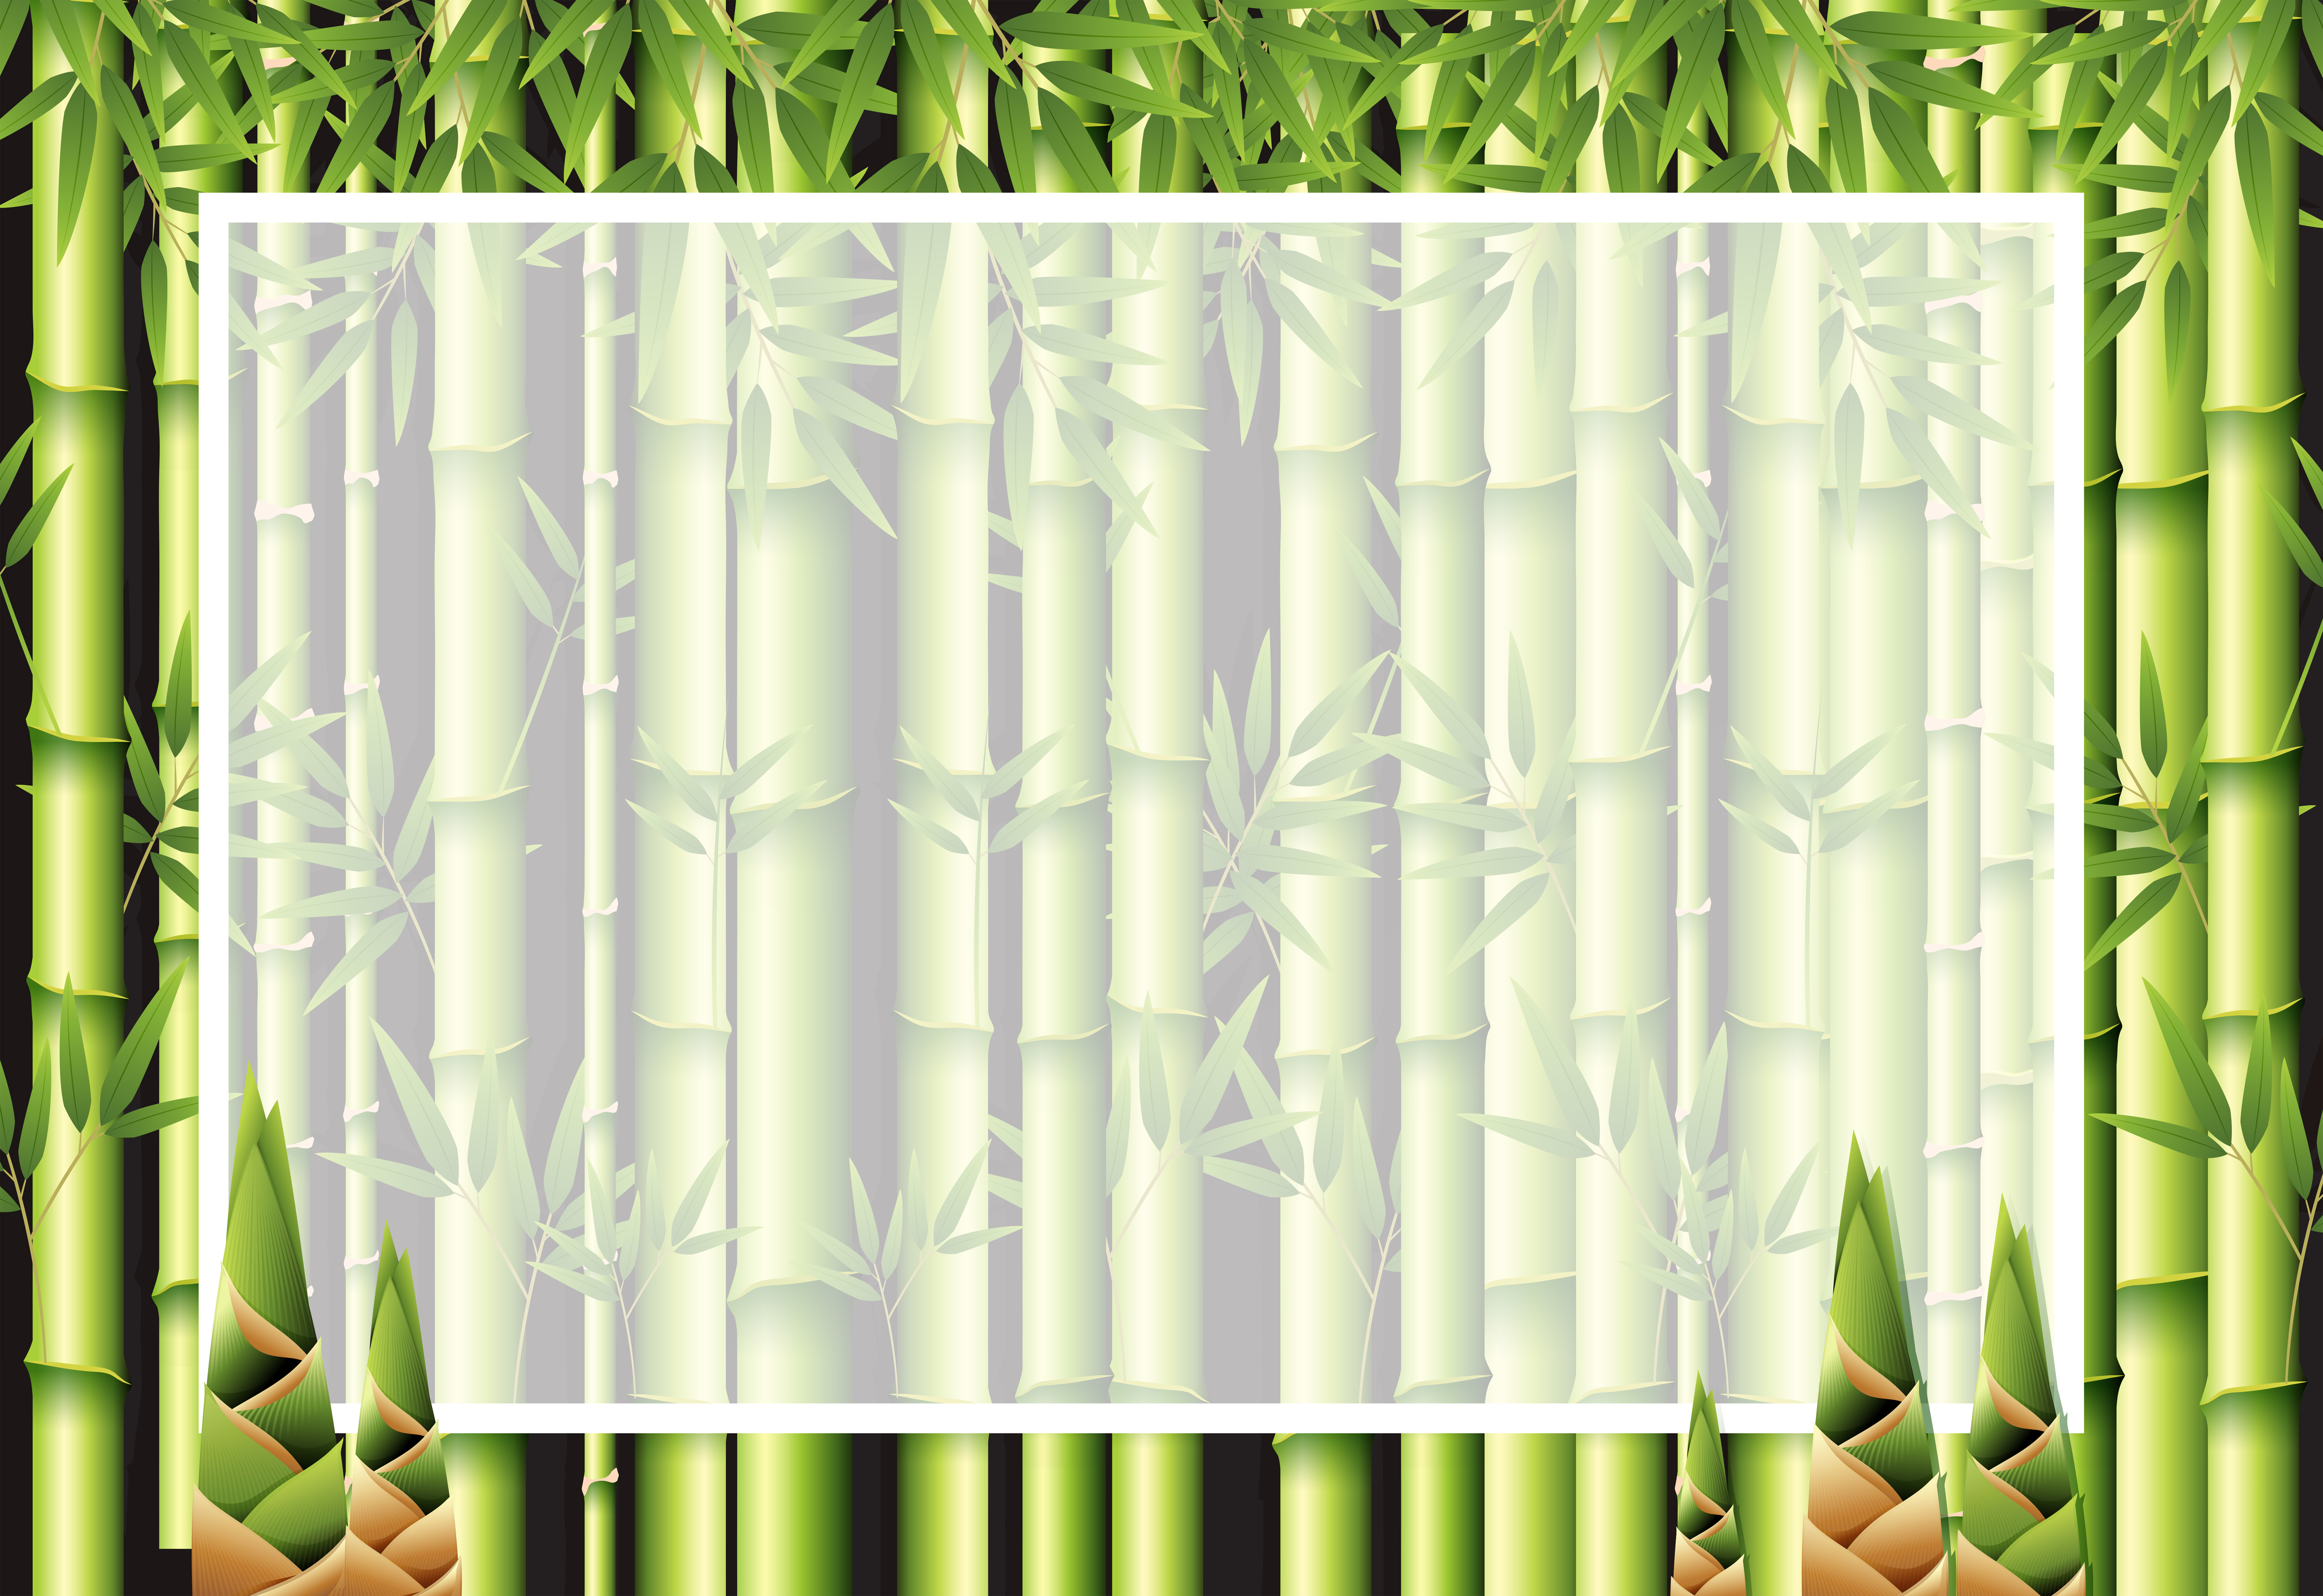 beautiful nature bamboo frame template download free vectors clipart graphics vector art vecteezy